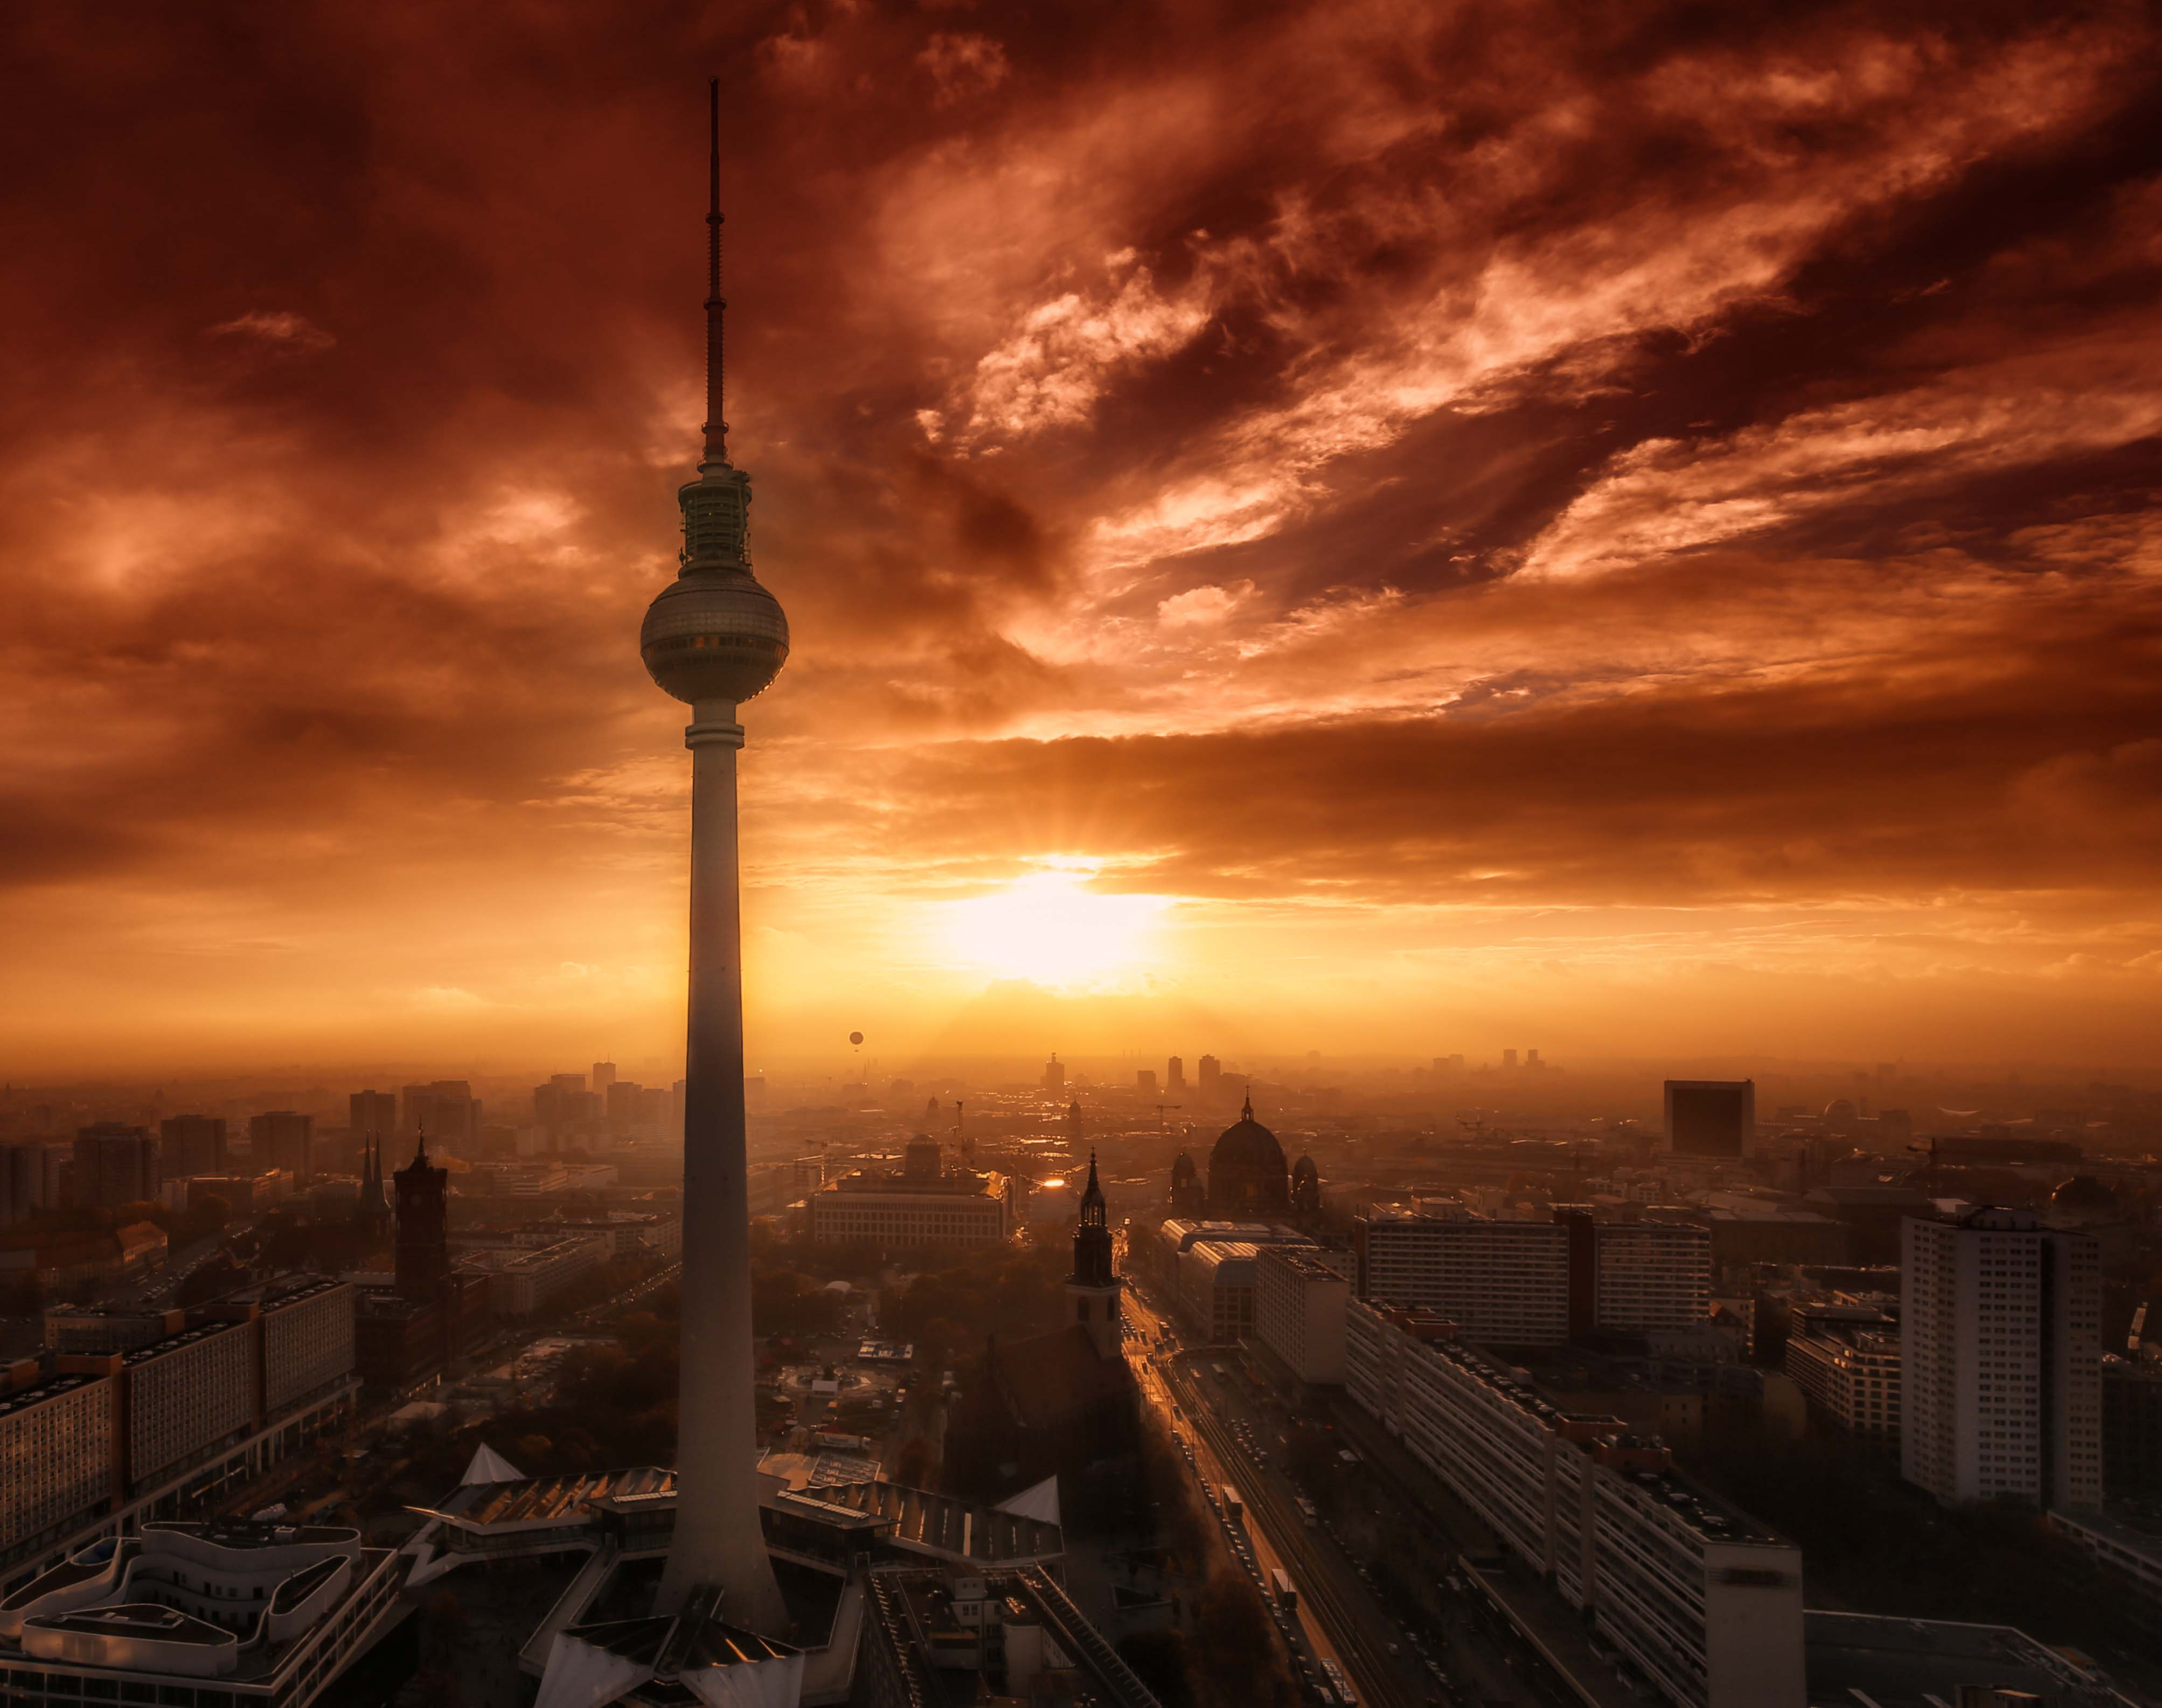 Sunset at the TV Tower, Berlin.